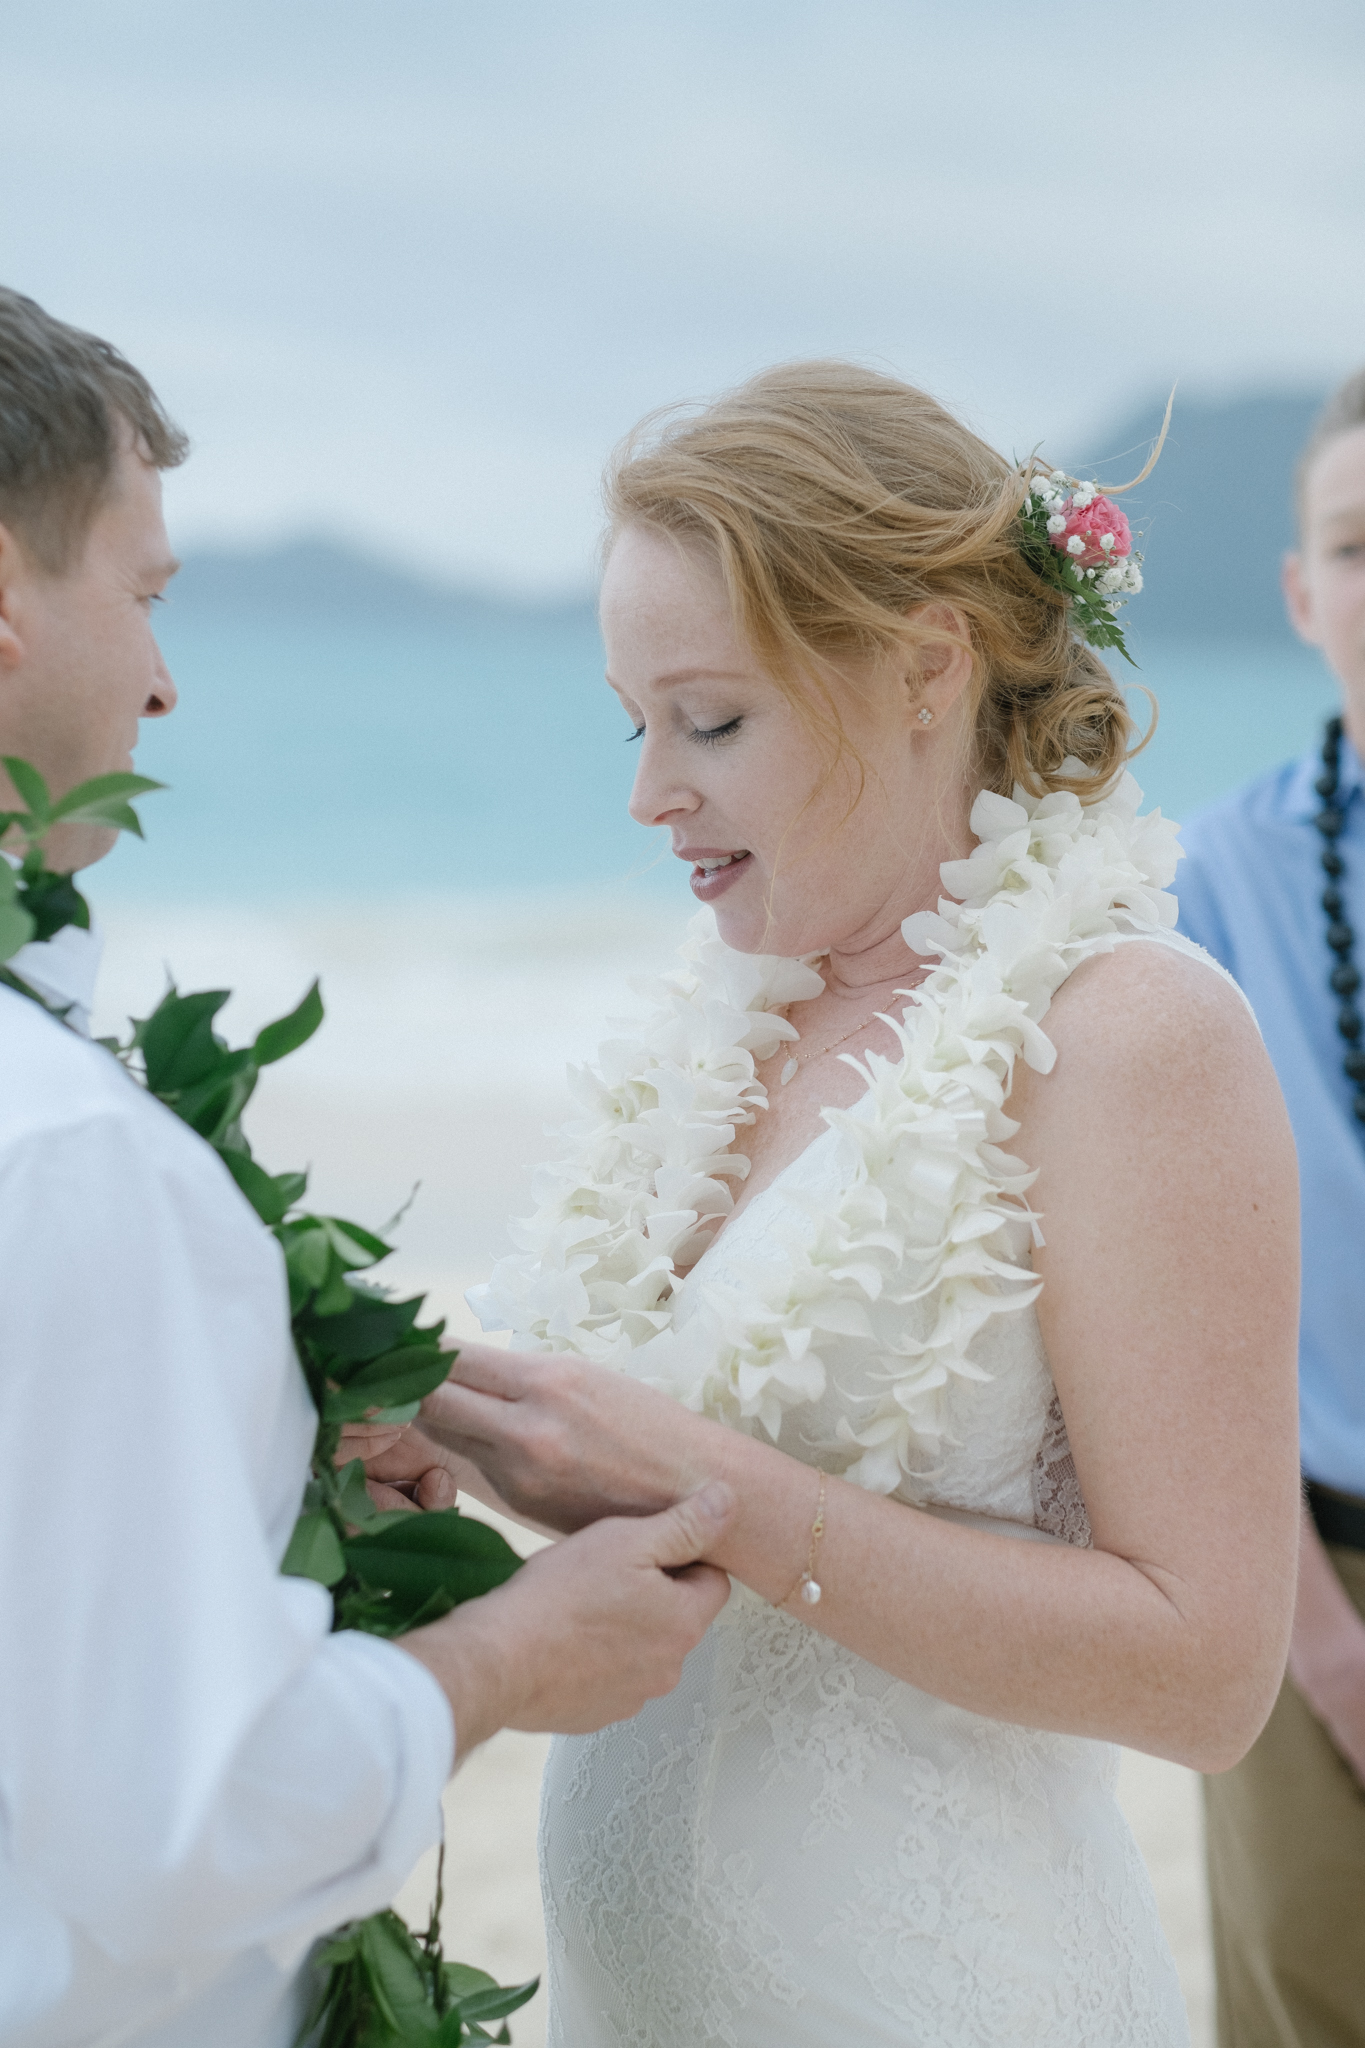 waimanalo_beach_wedding_photographer-22.jpg